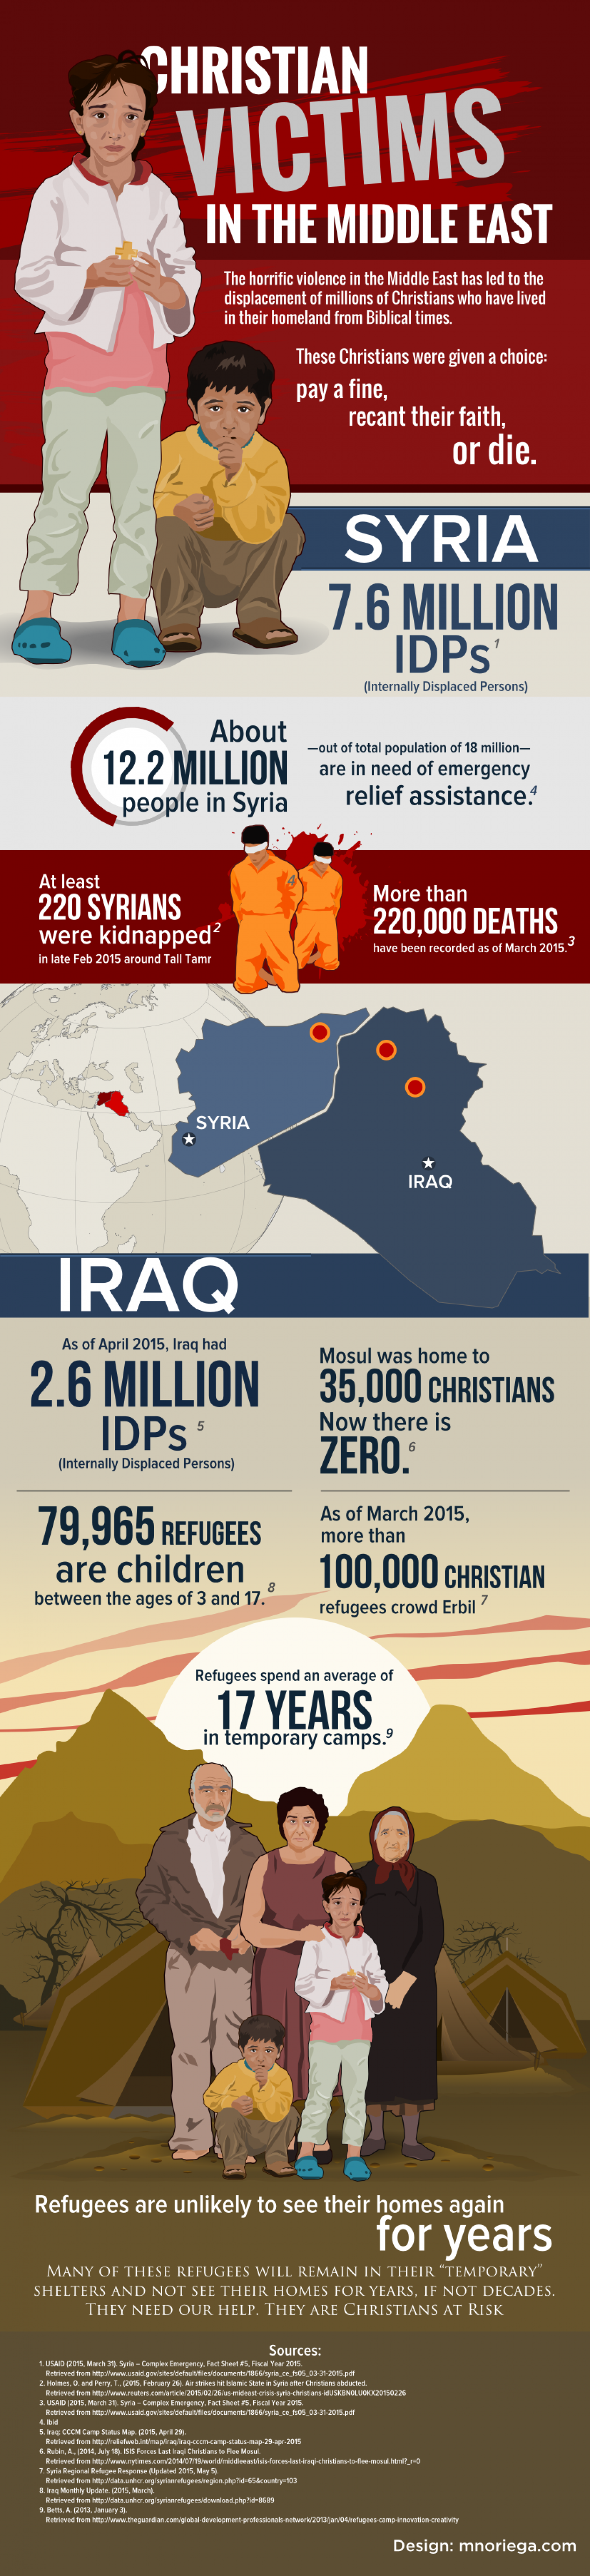 Christian Victims in the Middle East Infographic